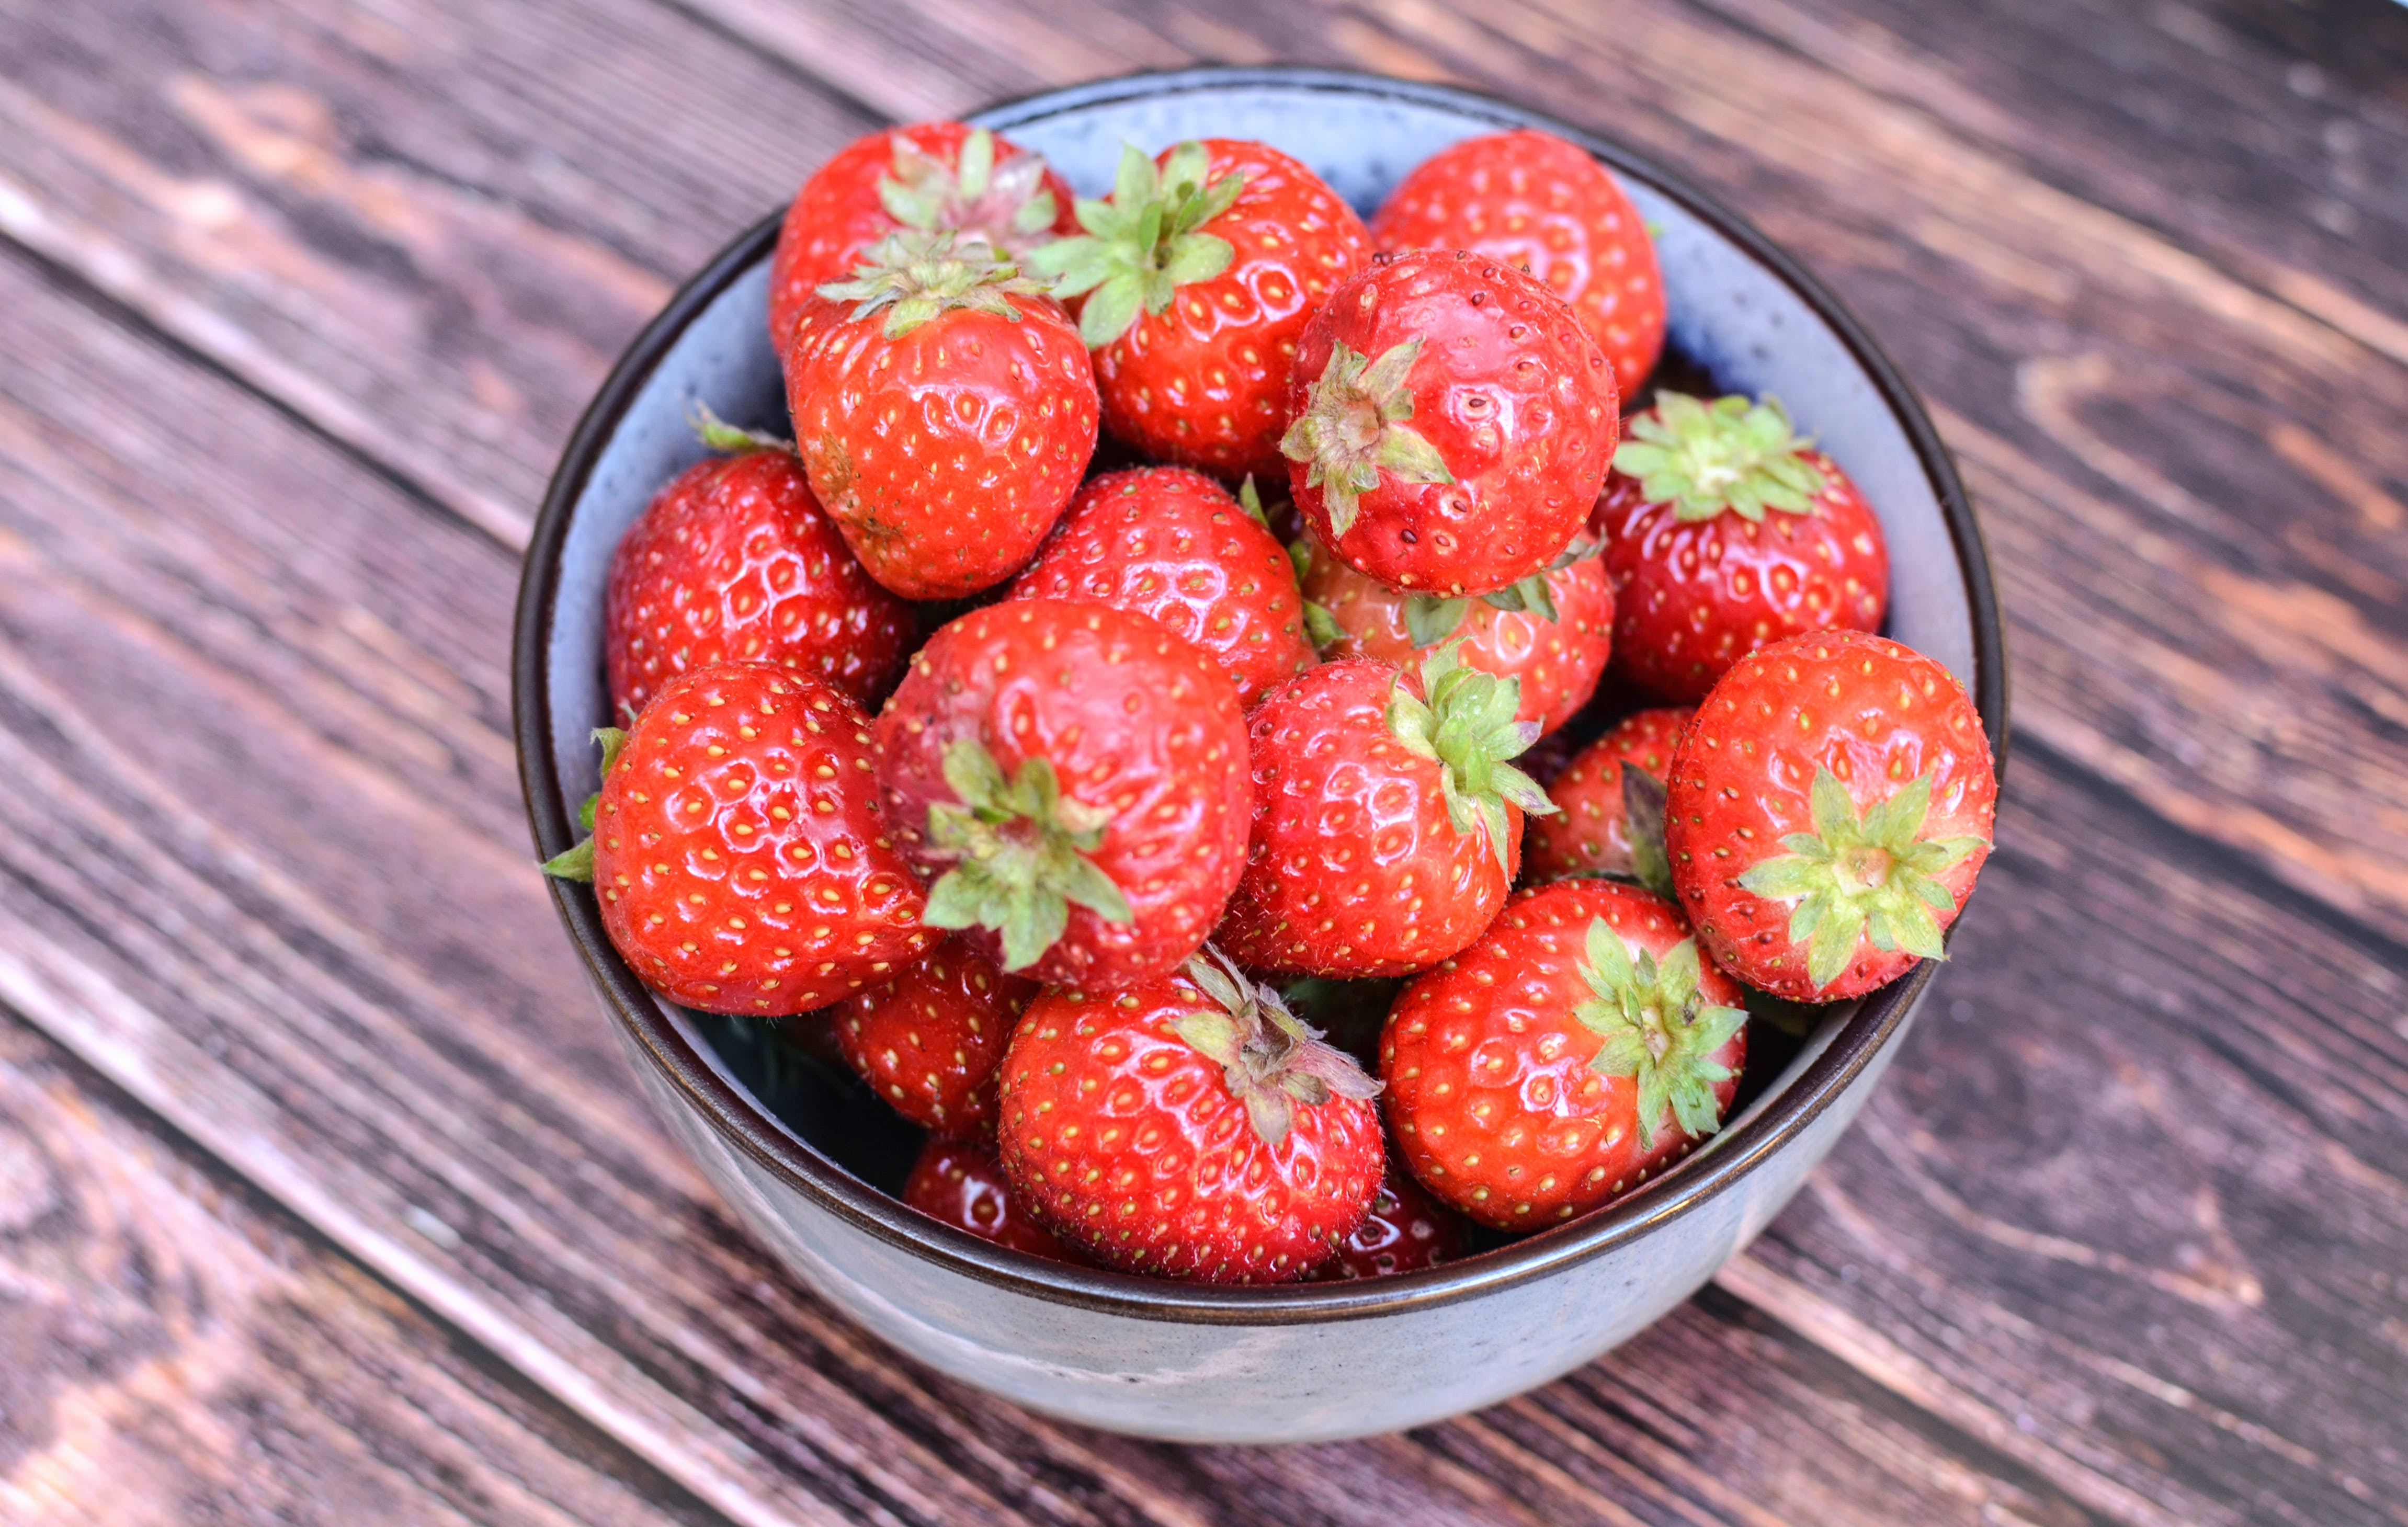 Close-Up Photo Of Strawberries On Bowl